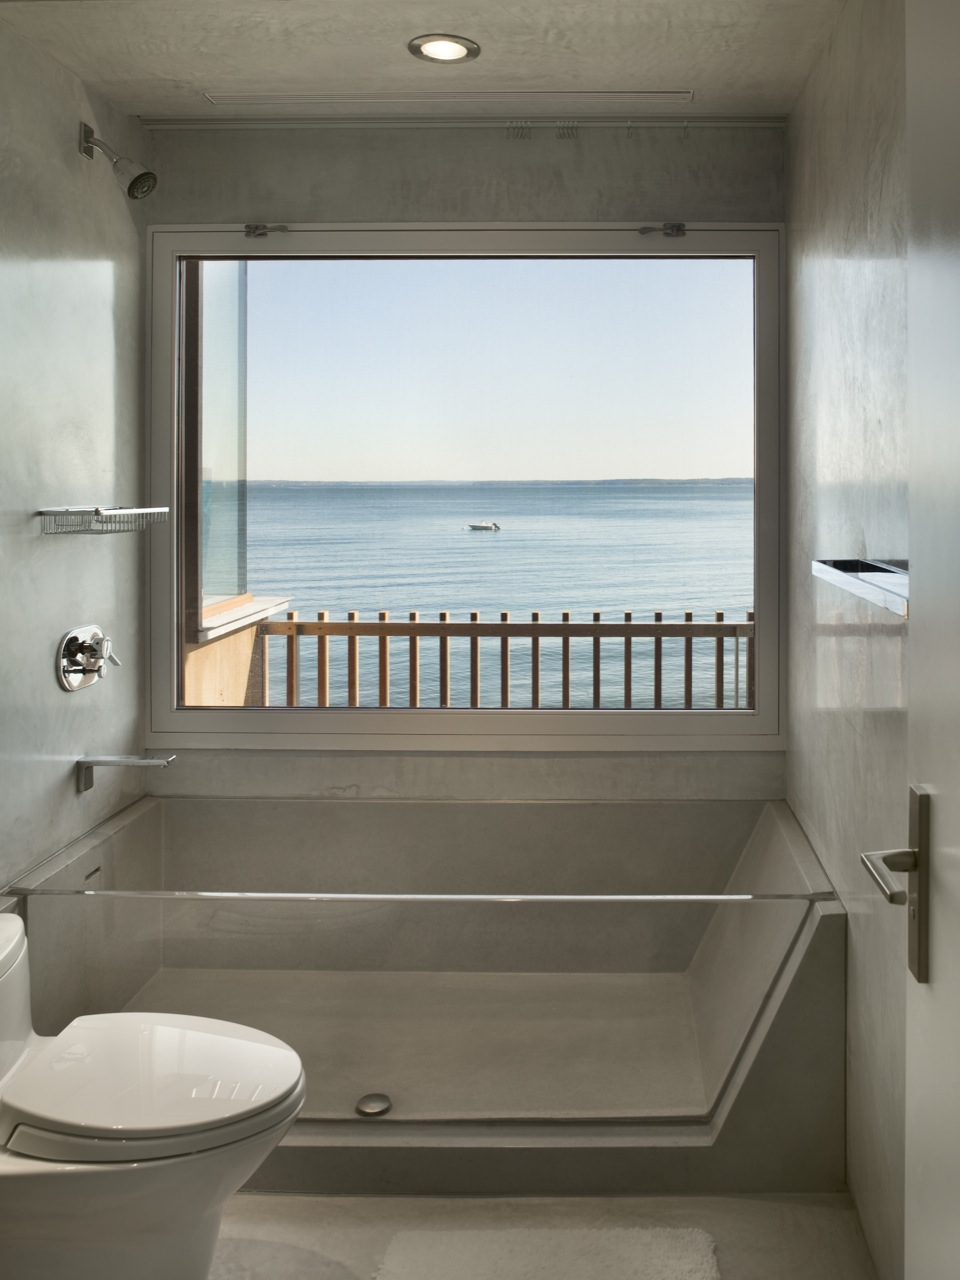 See-Through Bath, Bathroom, Ocean Views, Oceanfront Residence in Connecticut